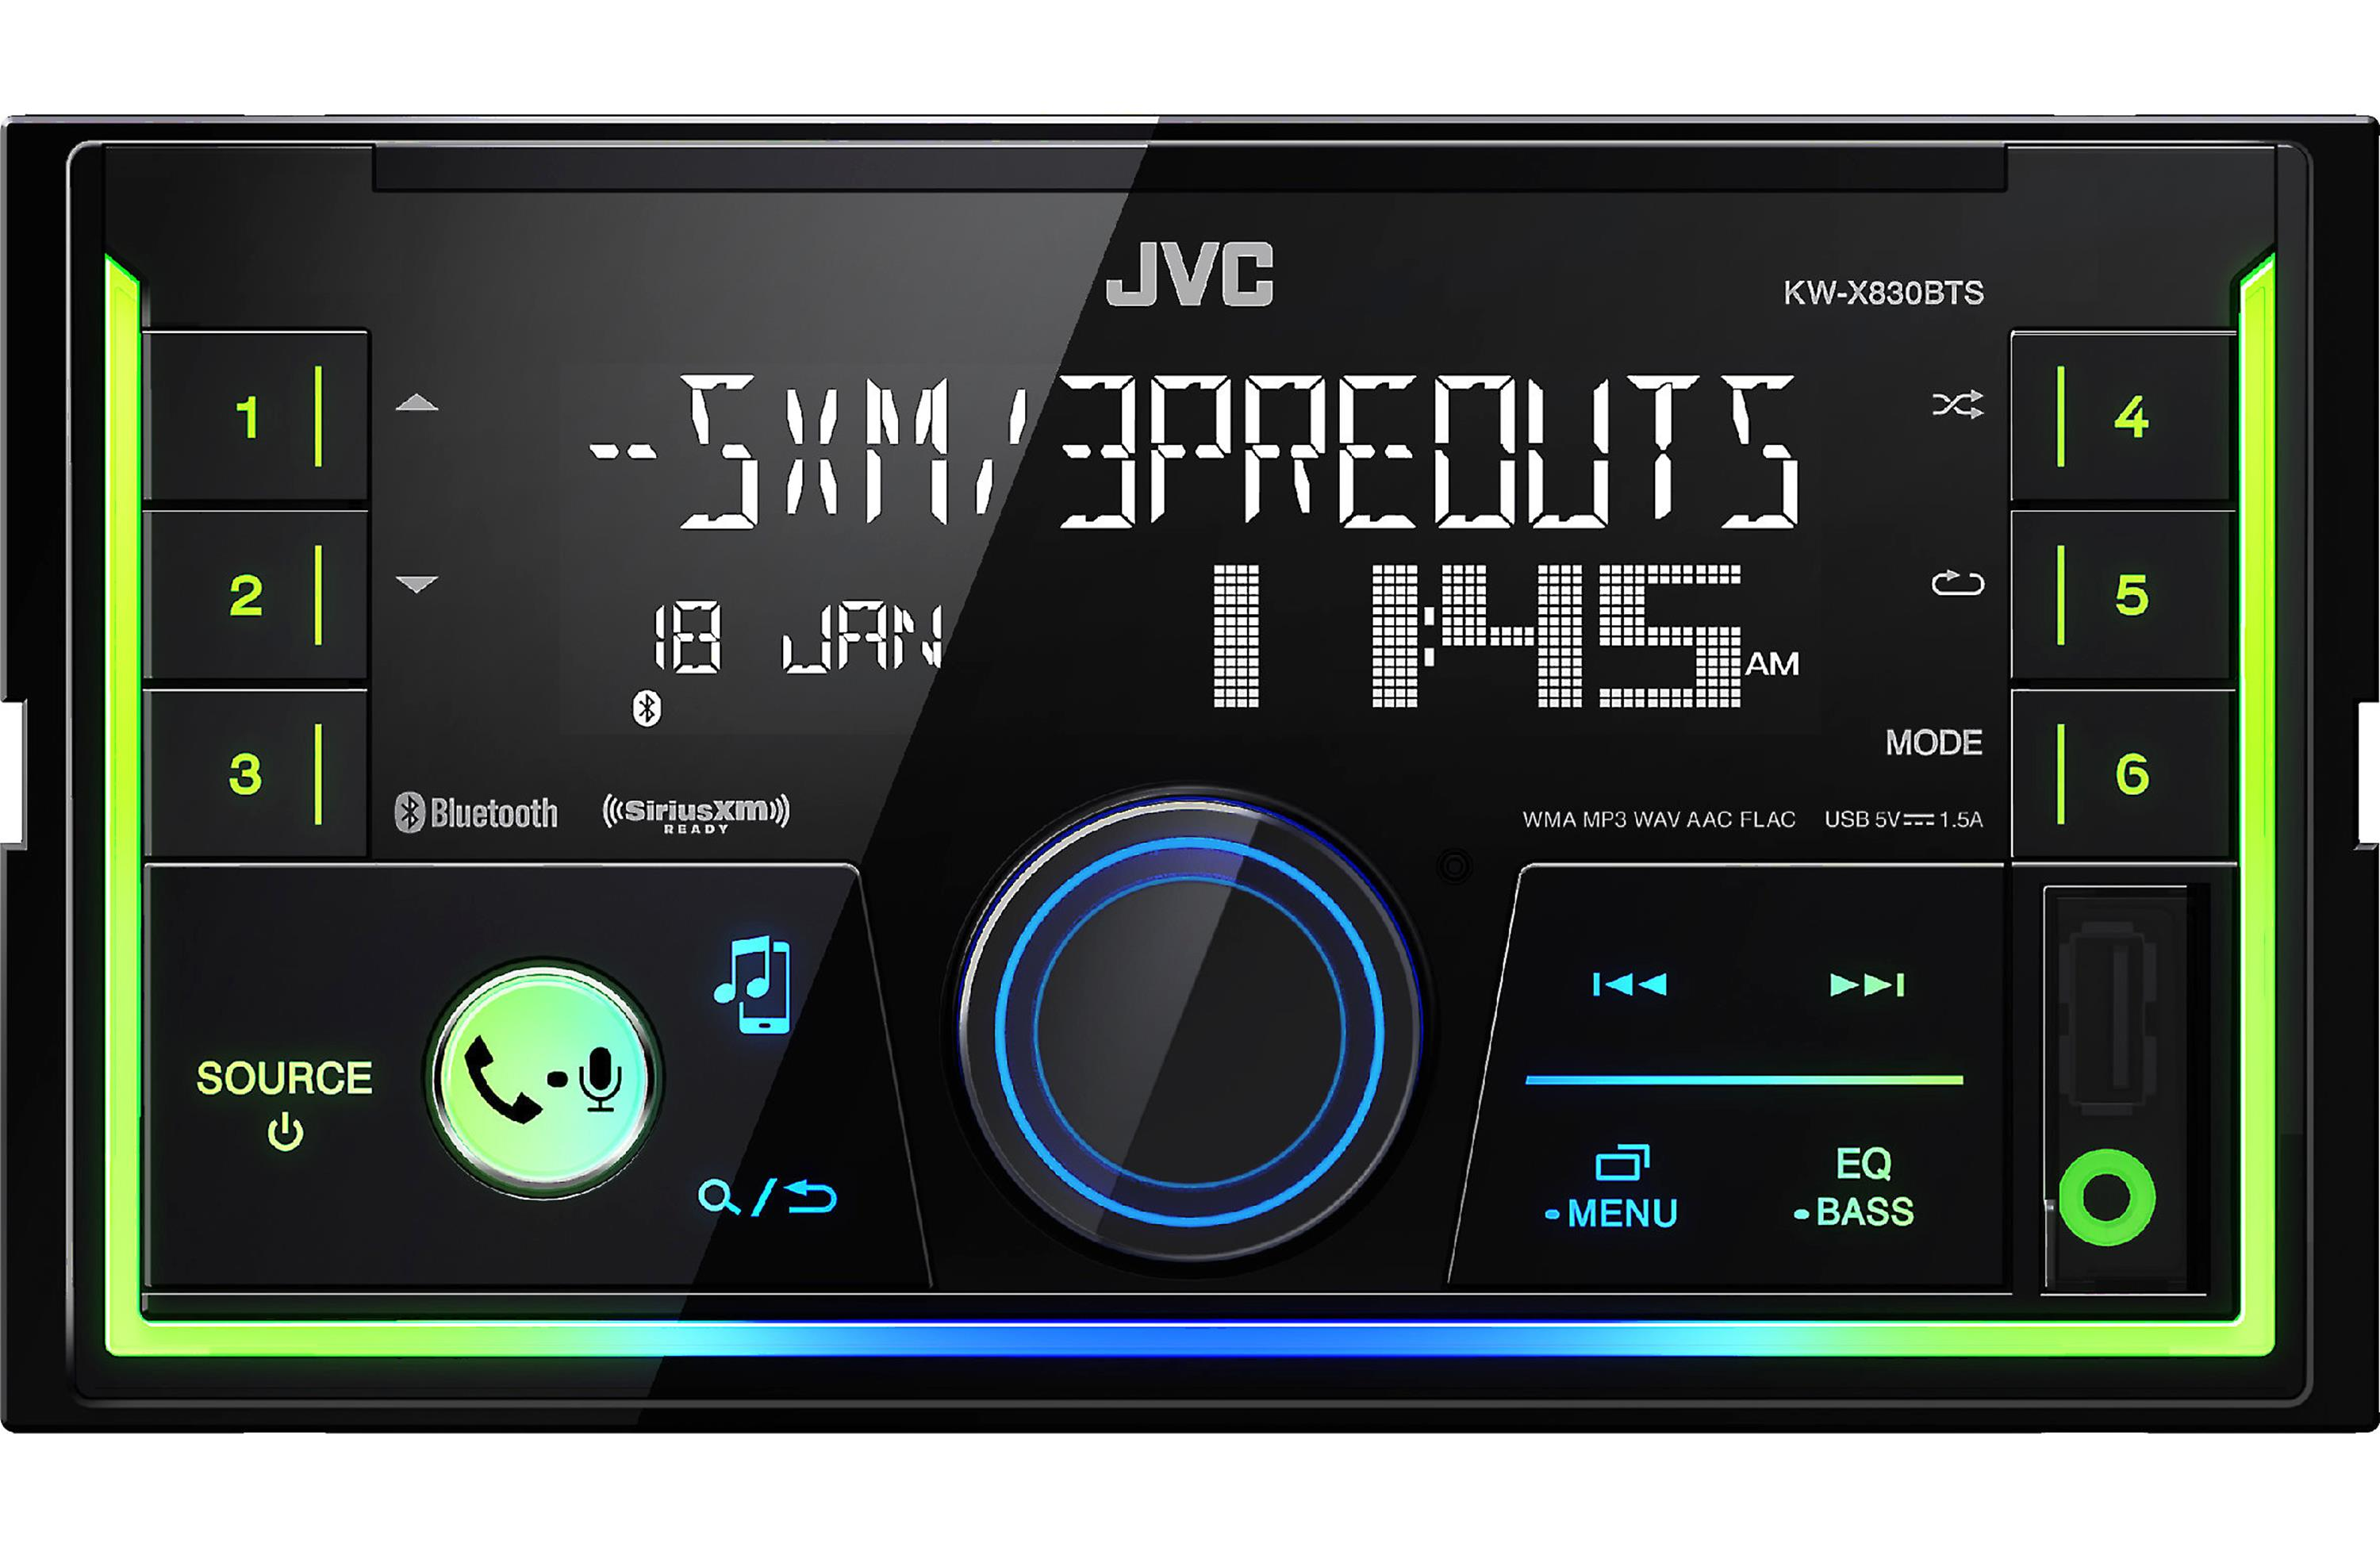 jvc radio bluetooth verbinden using venn diagrams in math kw x830bt mechless double din stereo with